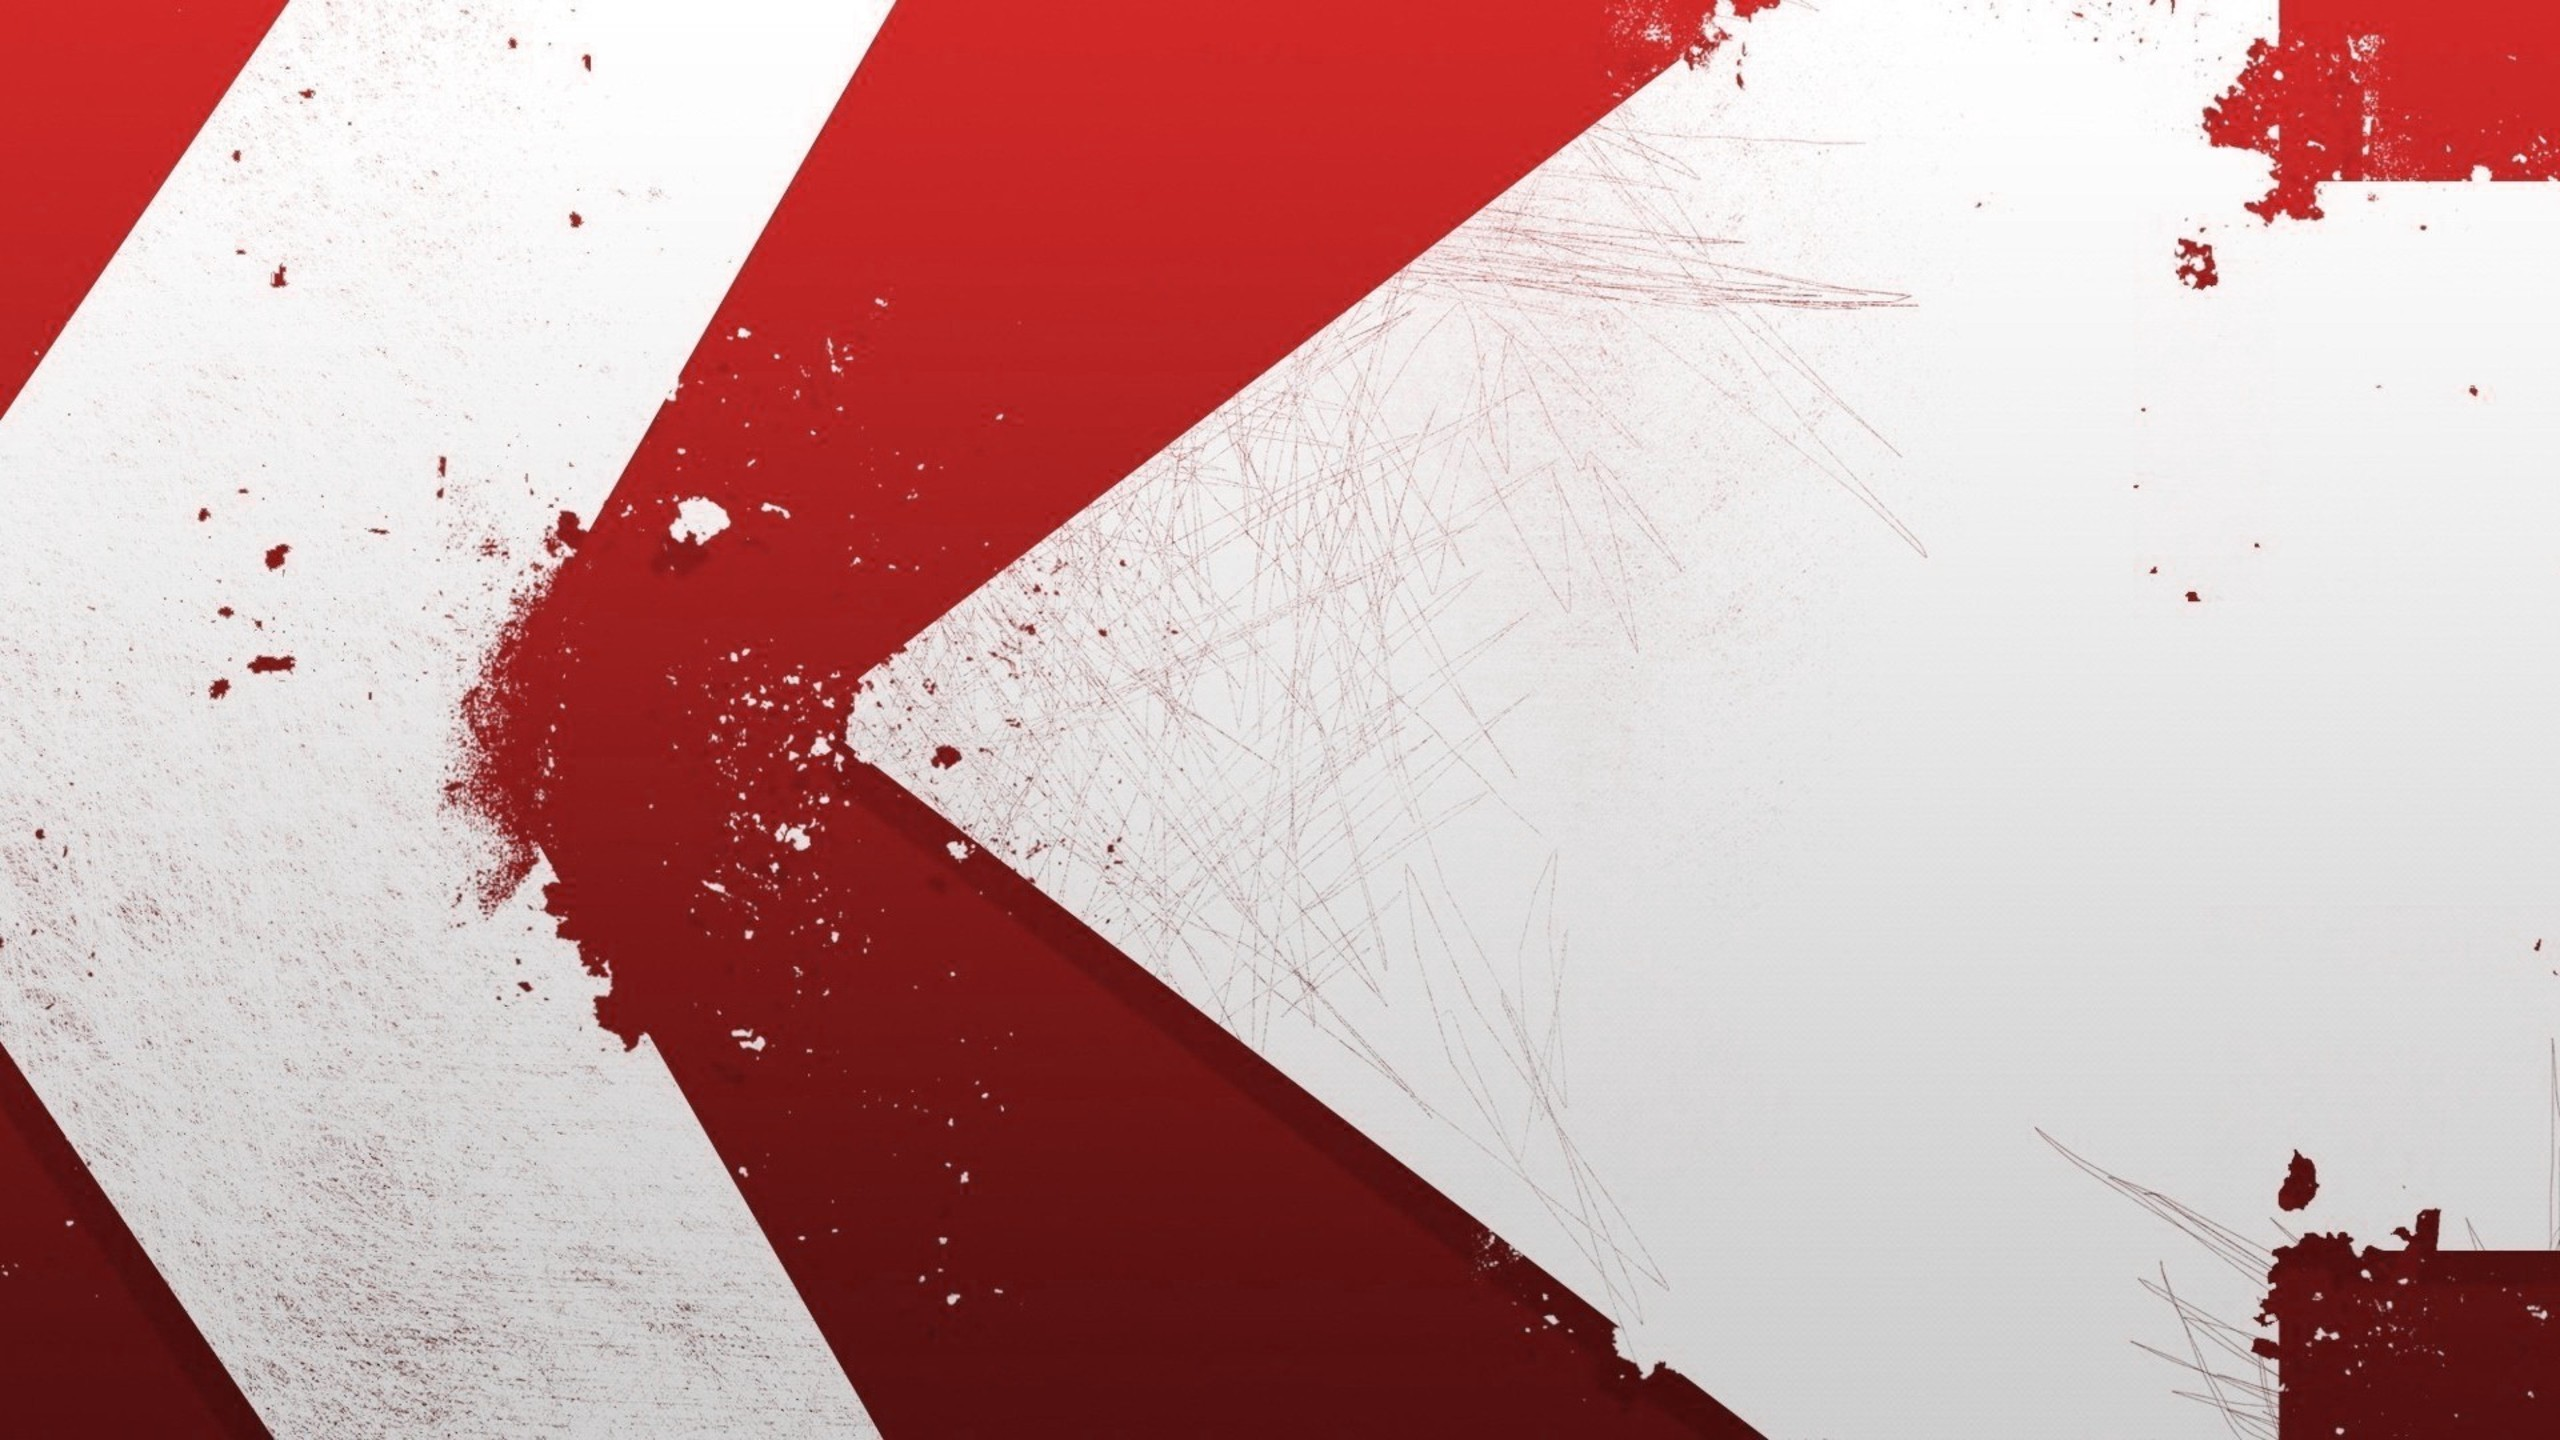 red-and-white-arrows-abstract-hd-wallpaper-2560x1440-5953